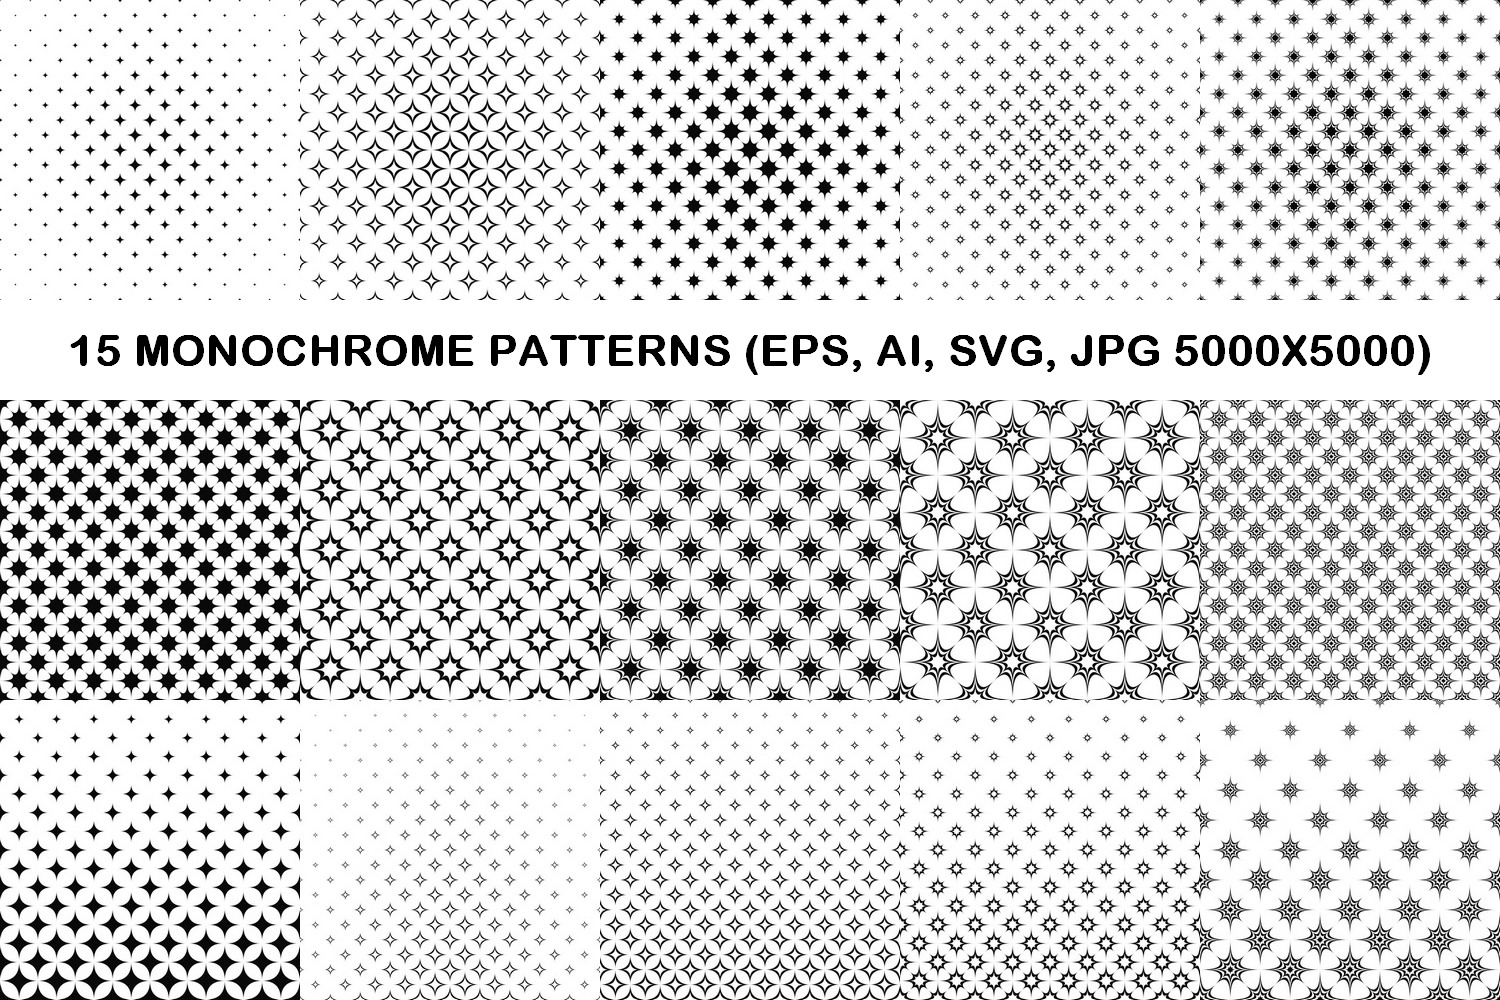 75 Monochrome Geometrical Patterns AI, EPS, JPG 5000x5000 example image 4